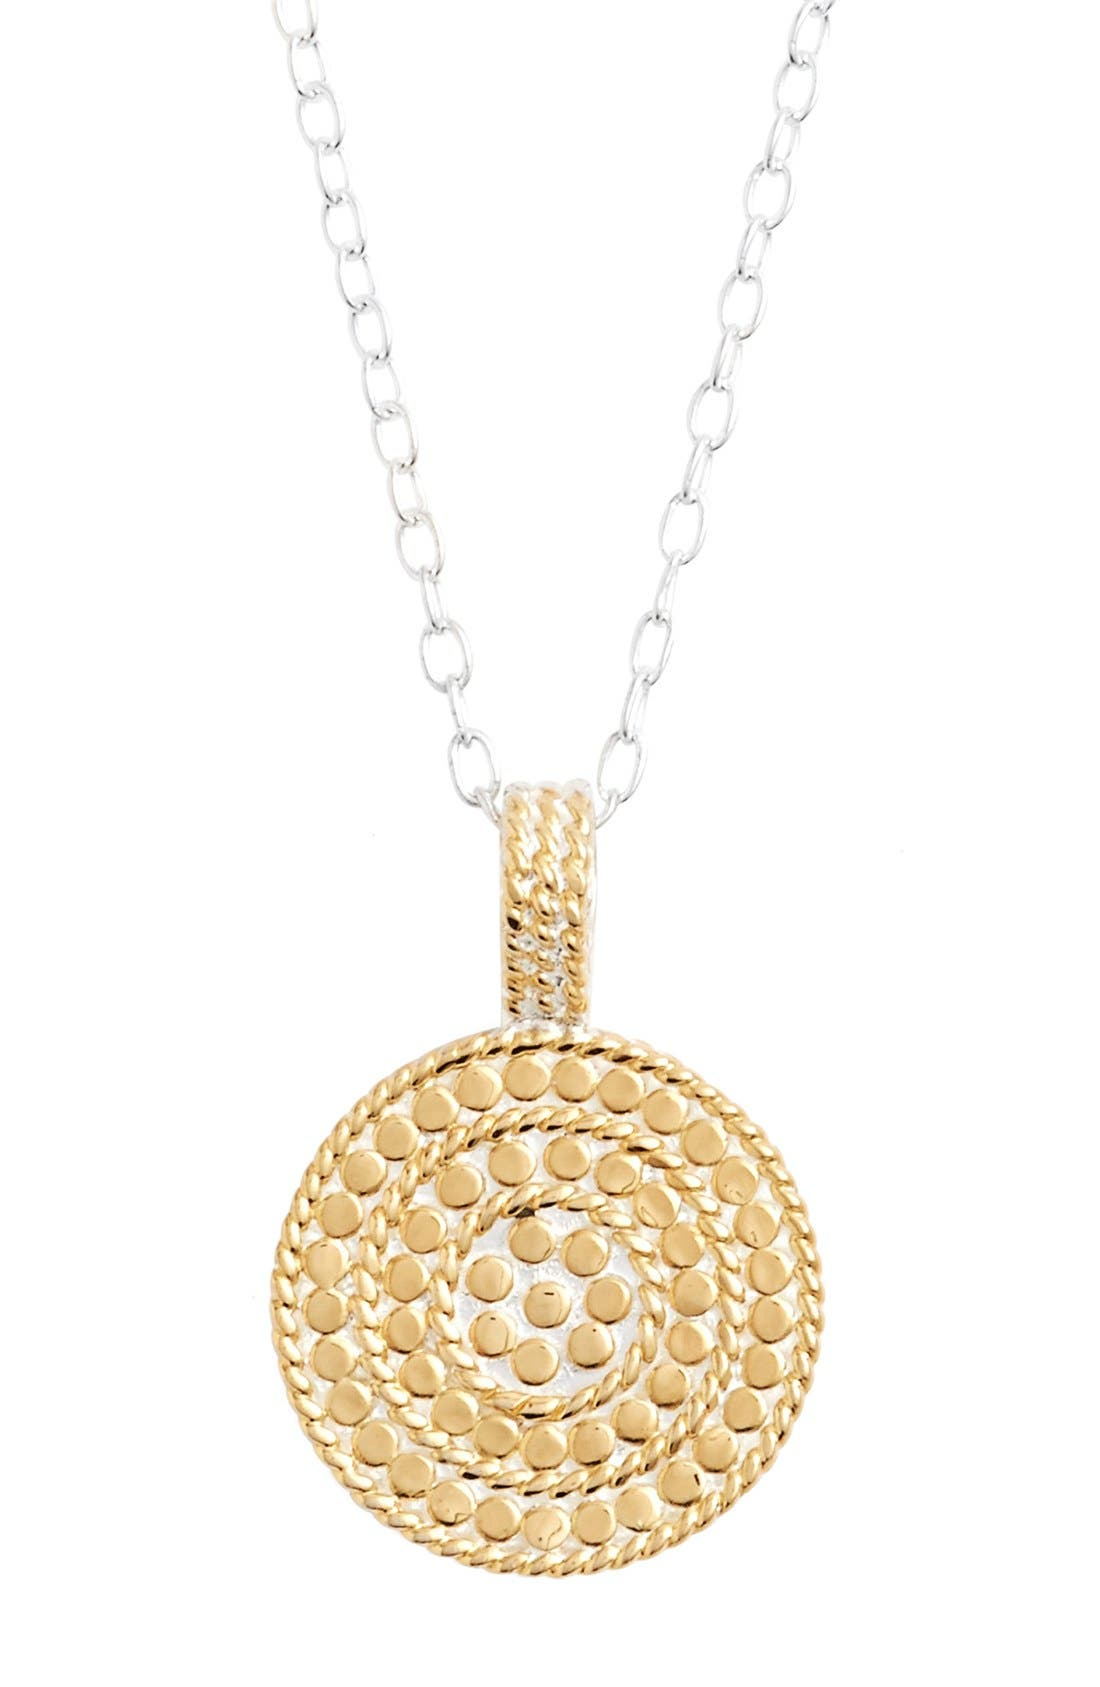 Main Image - Anna Beck Jewelry That Makes a Difference Circle of Life Pendant Necklace